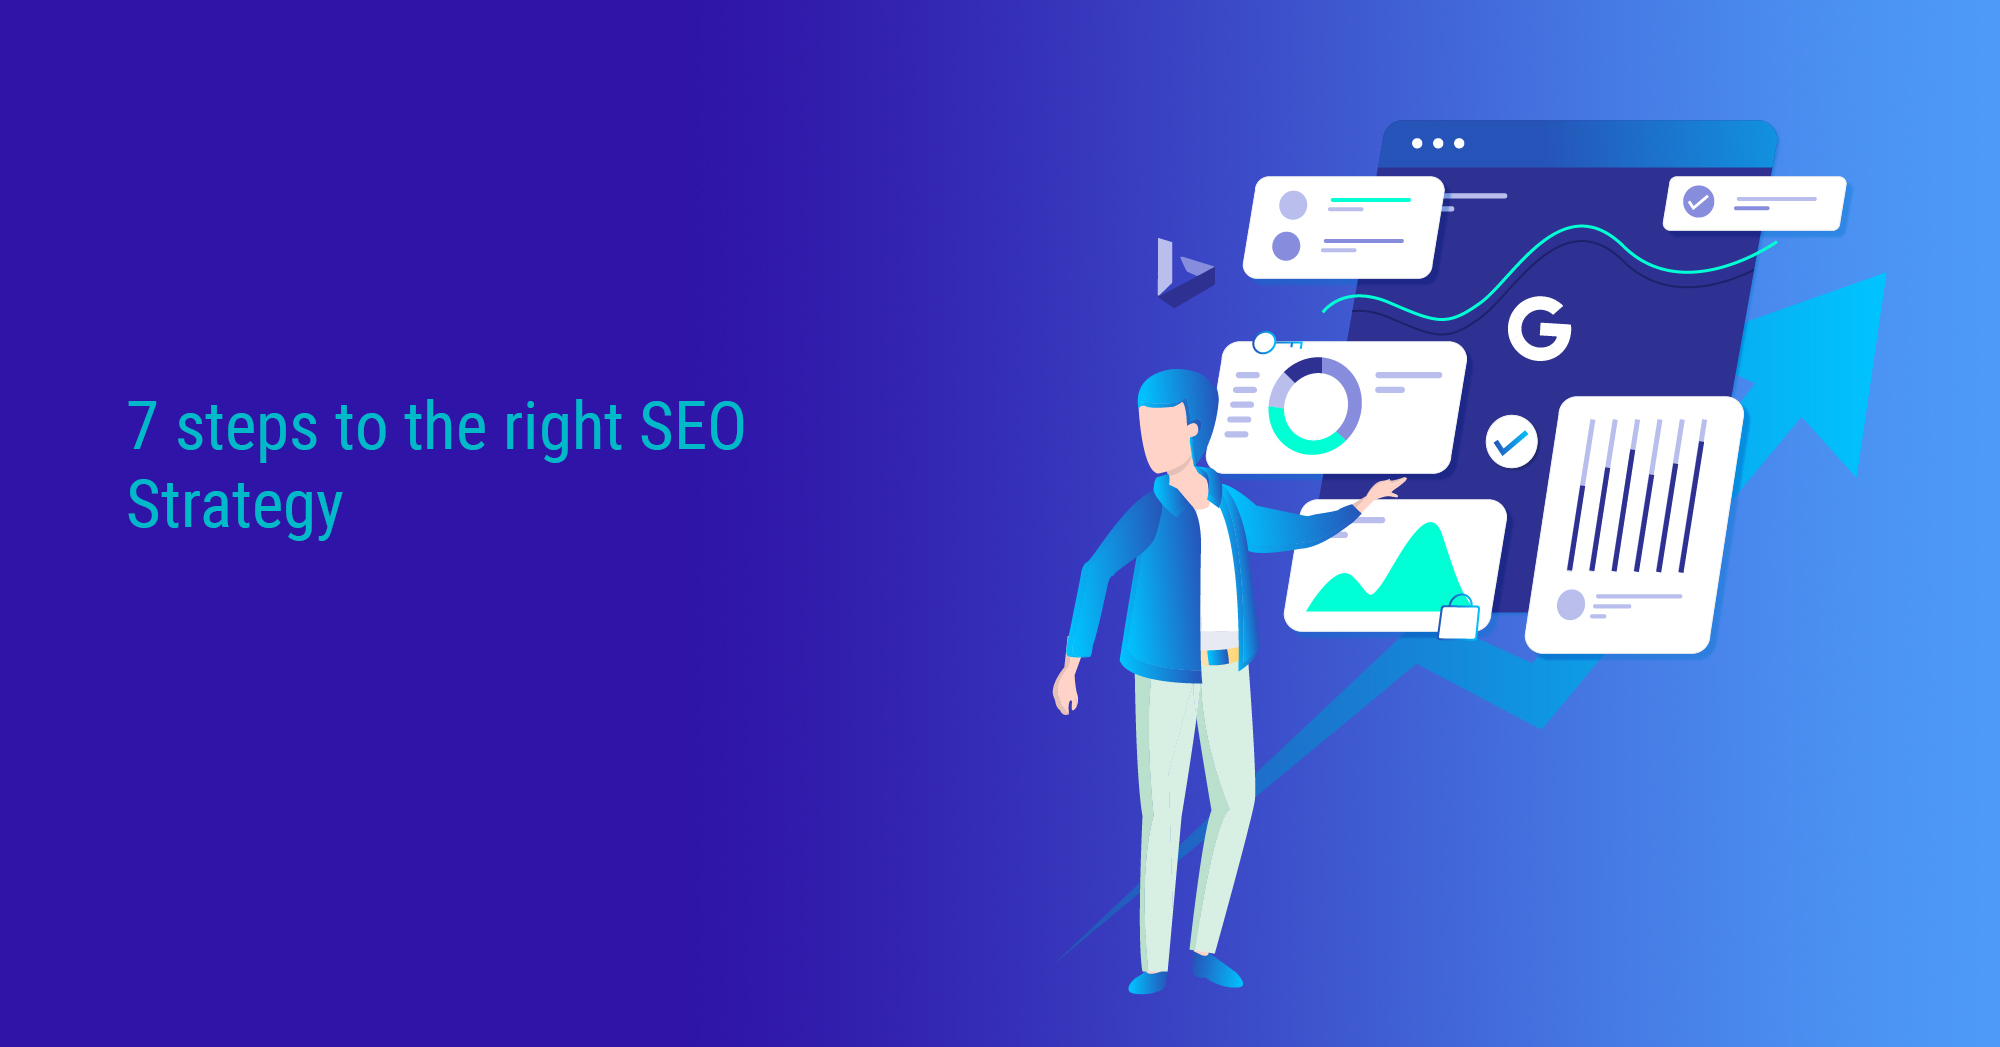 7 steps to the right SEO strategy